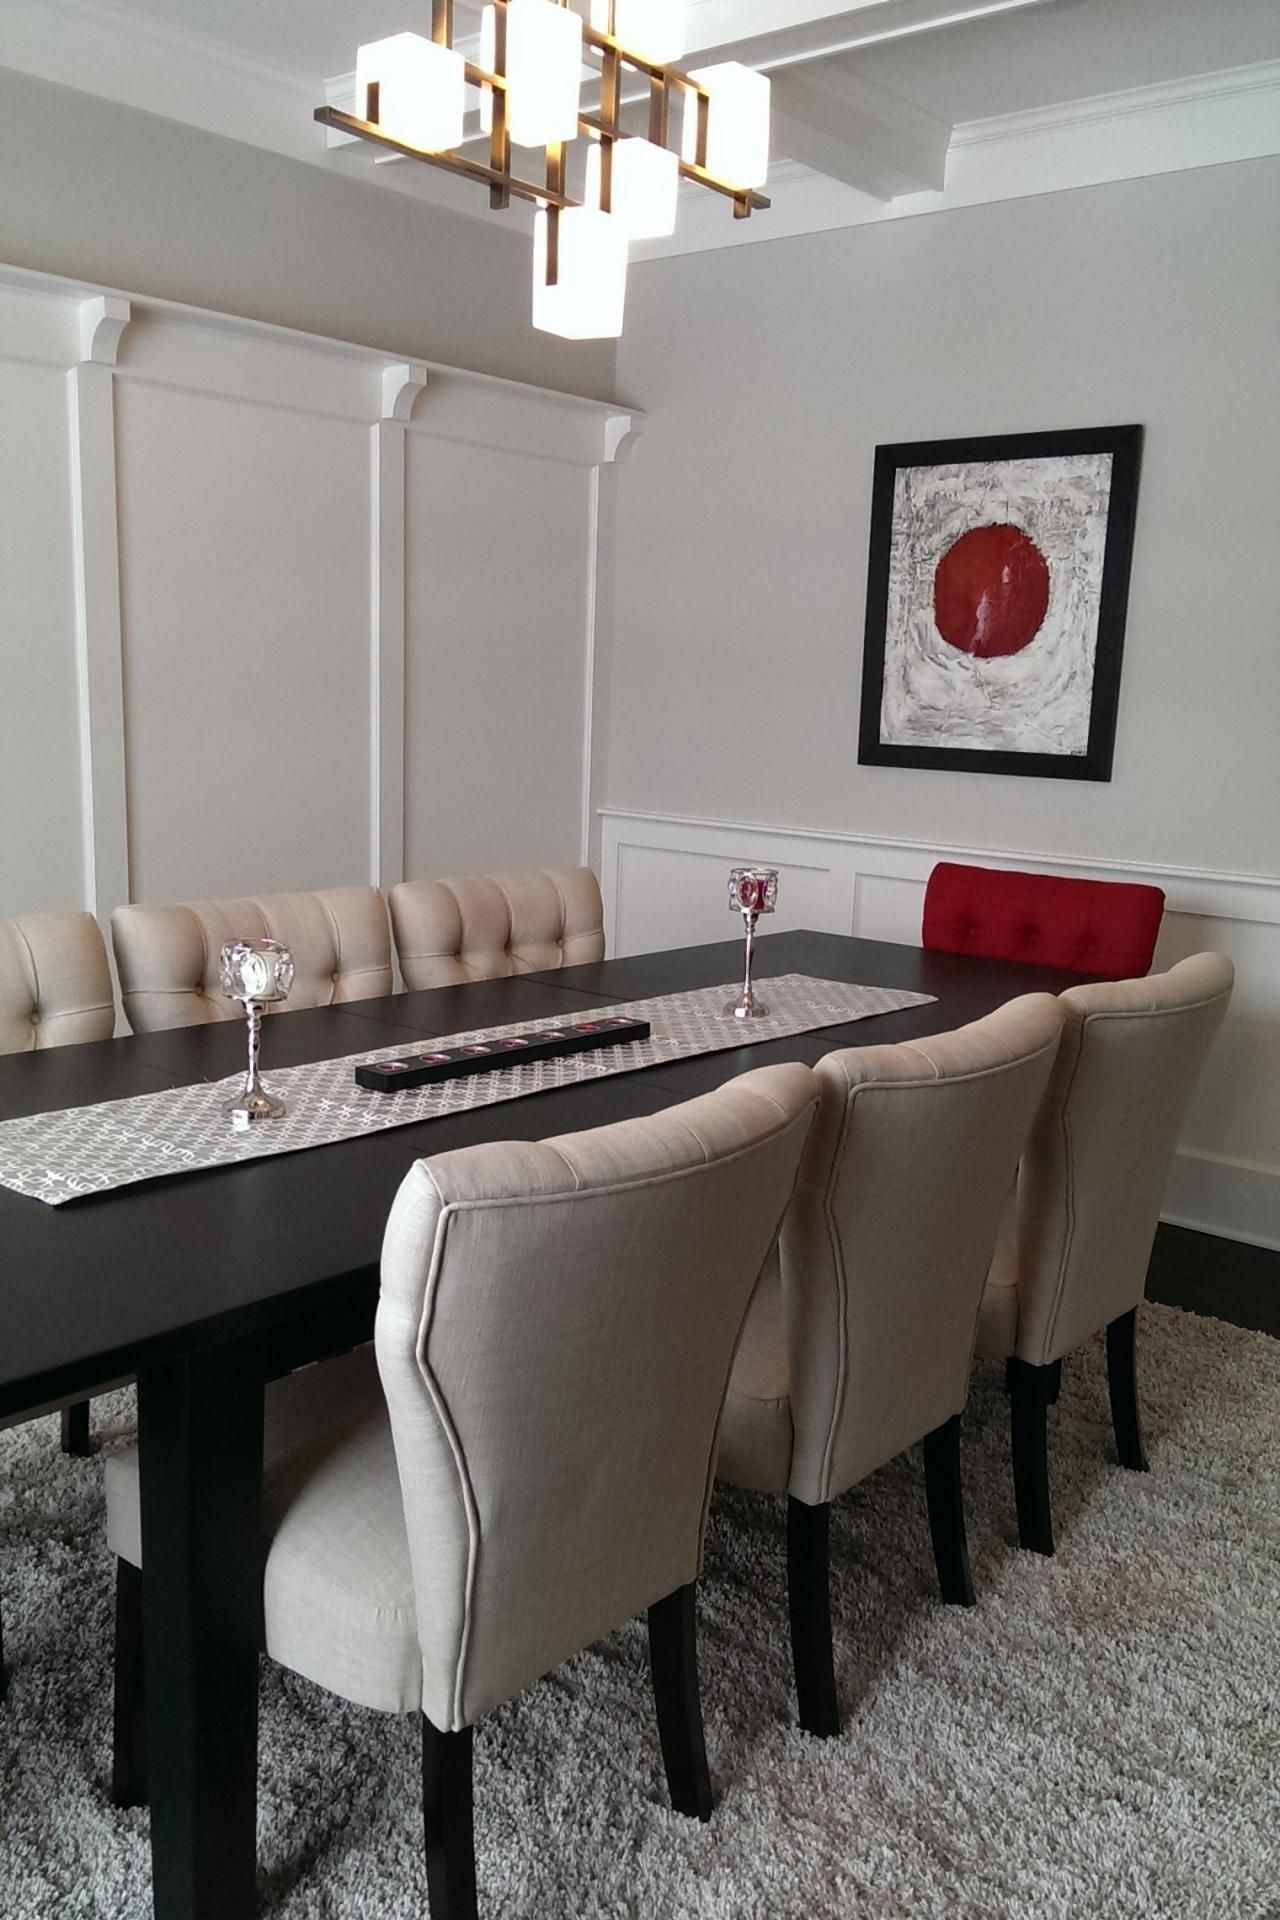 Transitional Neutral Dining Room With Red Accent Chair Modern Dining Chairs Dining Room Accent Chairs Dining Chairs Modern Design Dining room accent furniture